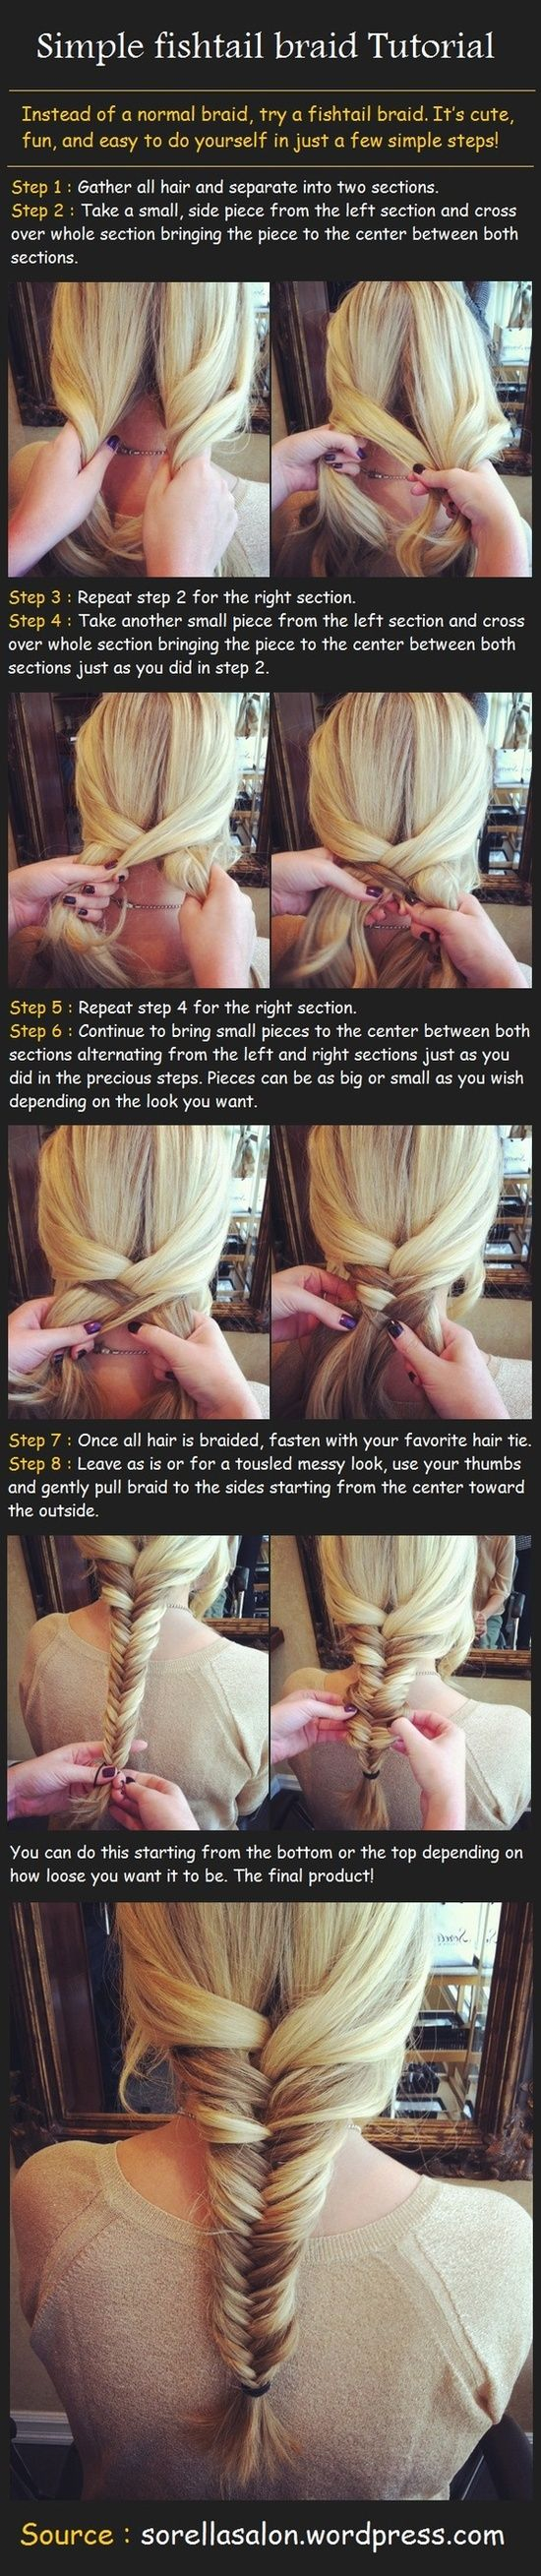 fishtail braid, easy tutorial, and has the strands on the inside instead of the outside, which I think usually turn out better!